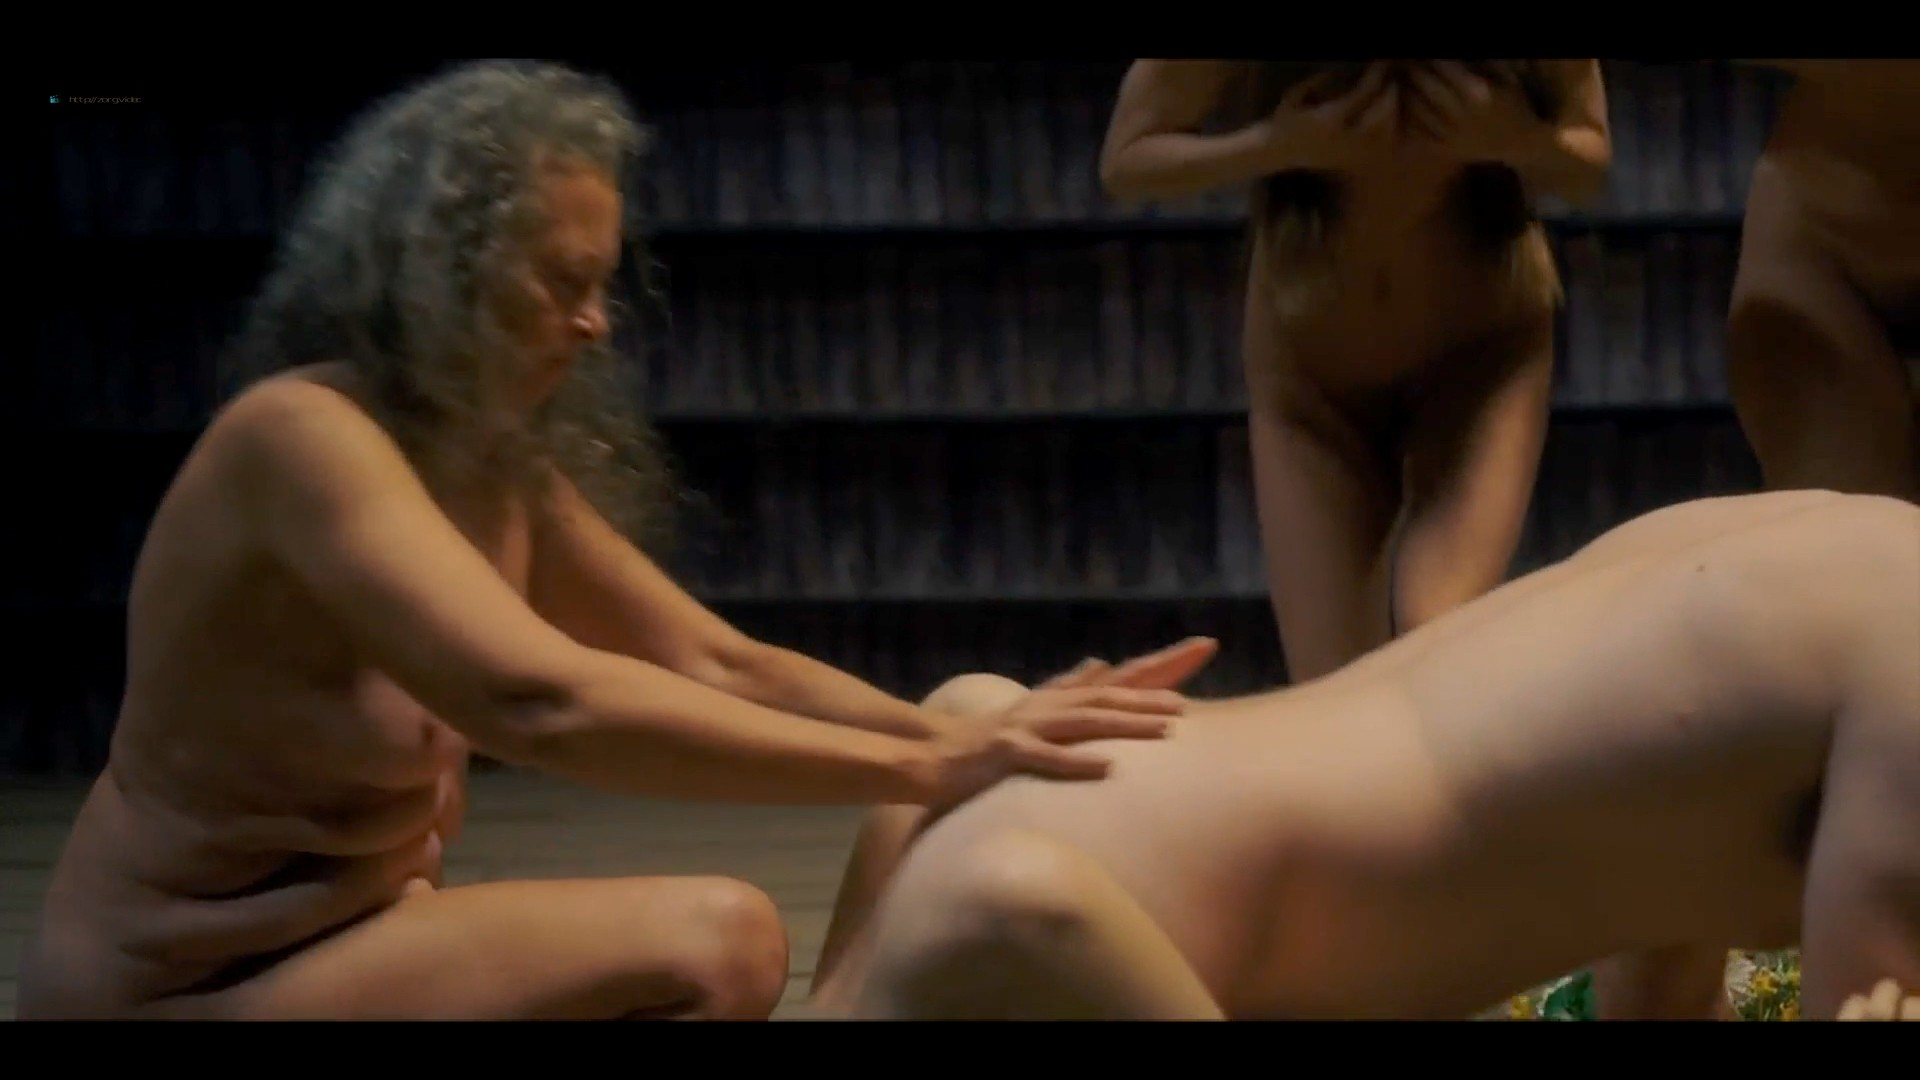 Isabelle Grill nude sex others nude full frontal - Midsommar (2019) HD 1080p Web (3)